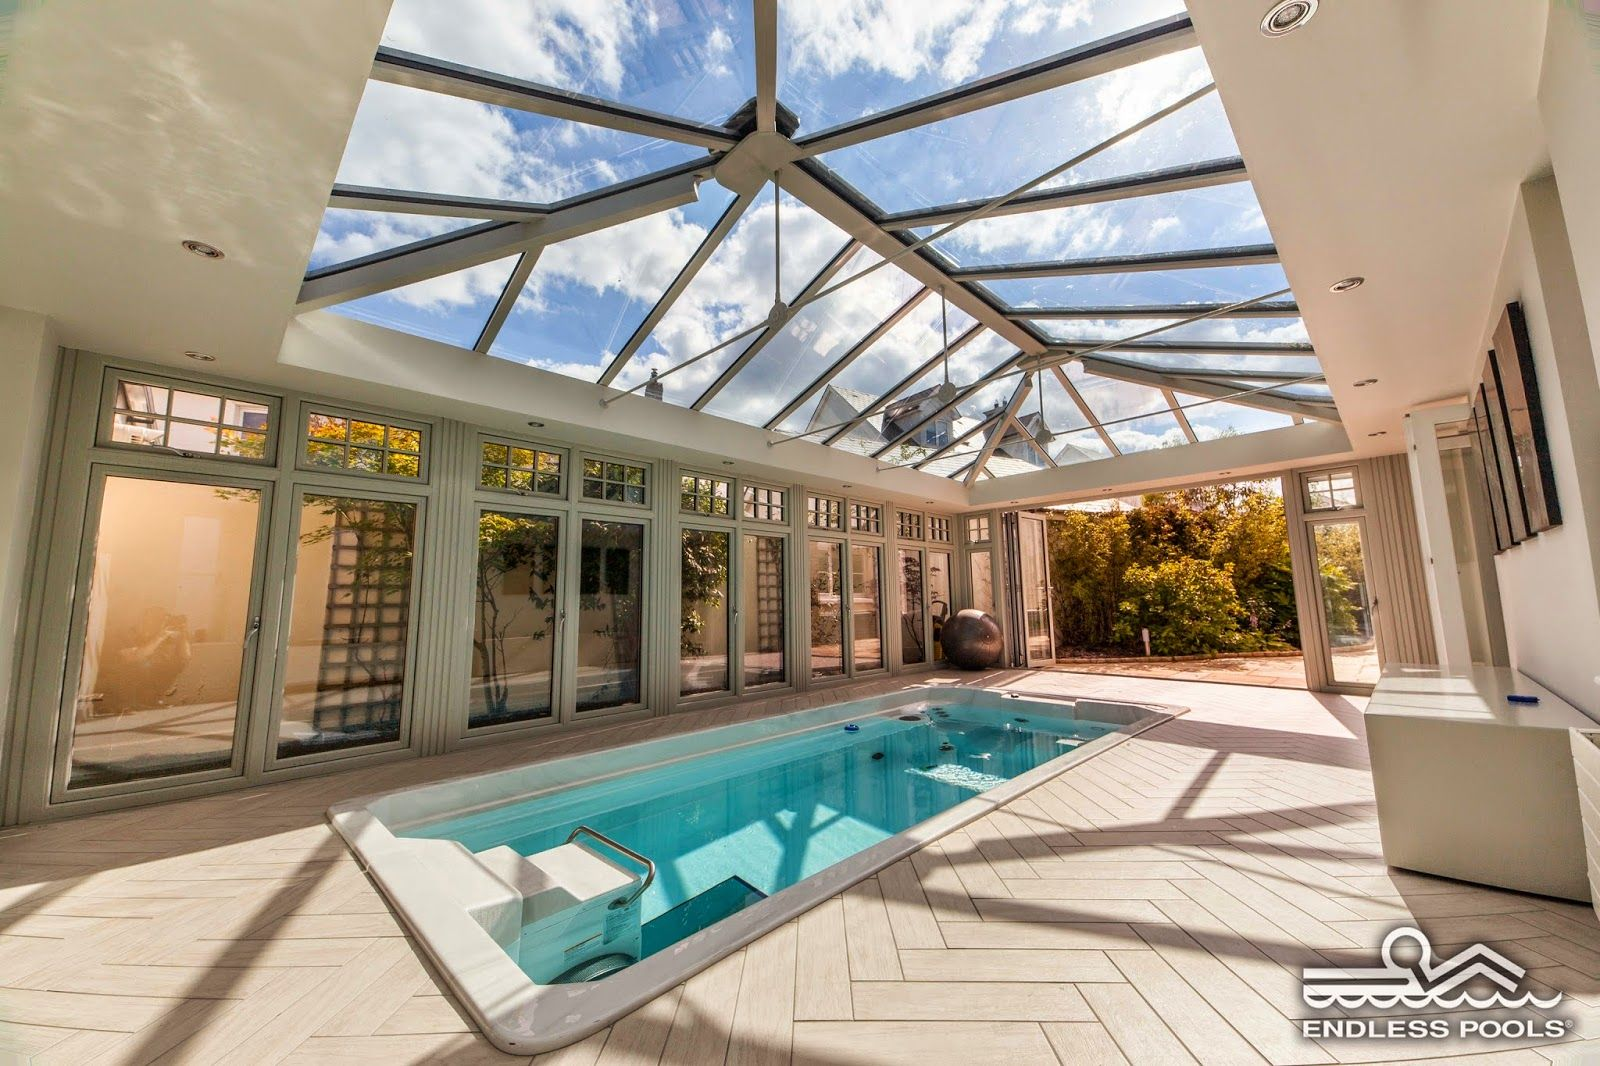 A Conservatory Installation Of An Endless Pool Swim Spa In County Dublin Ireland For More Ideas Visit Indoor Swimming Pool Design Endless Pool Pool Houses